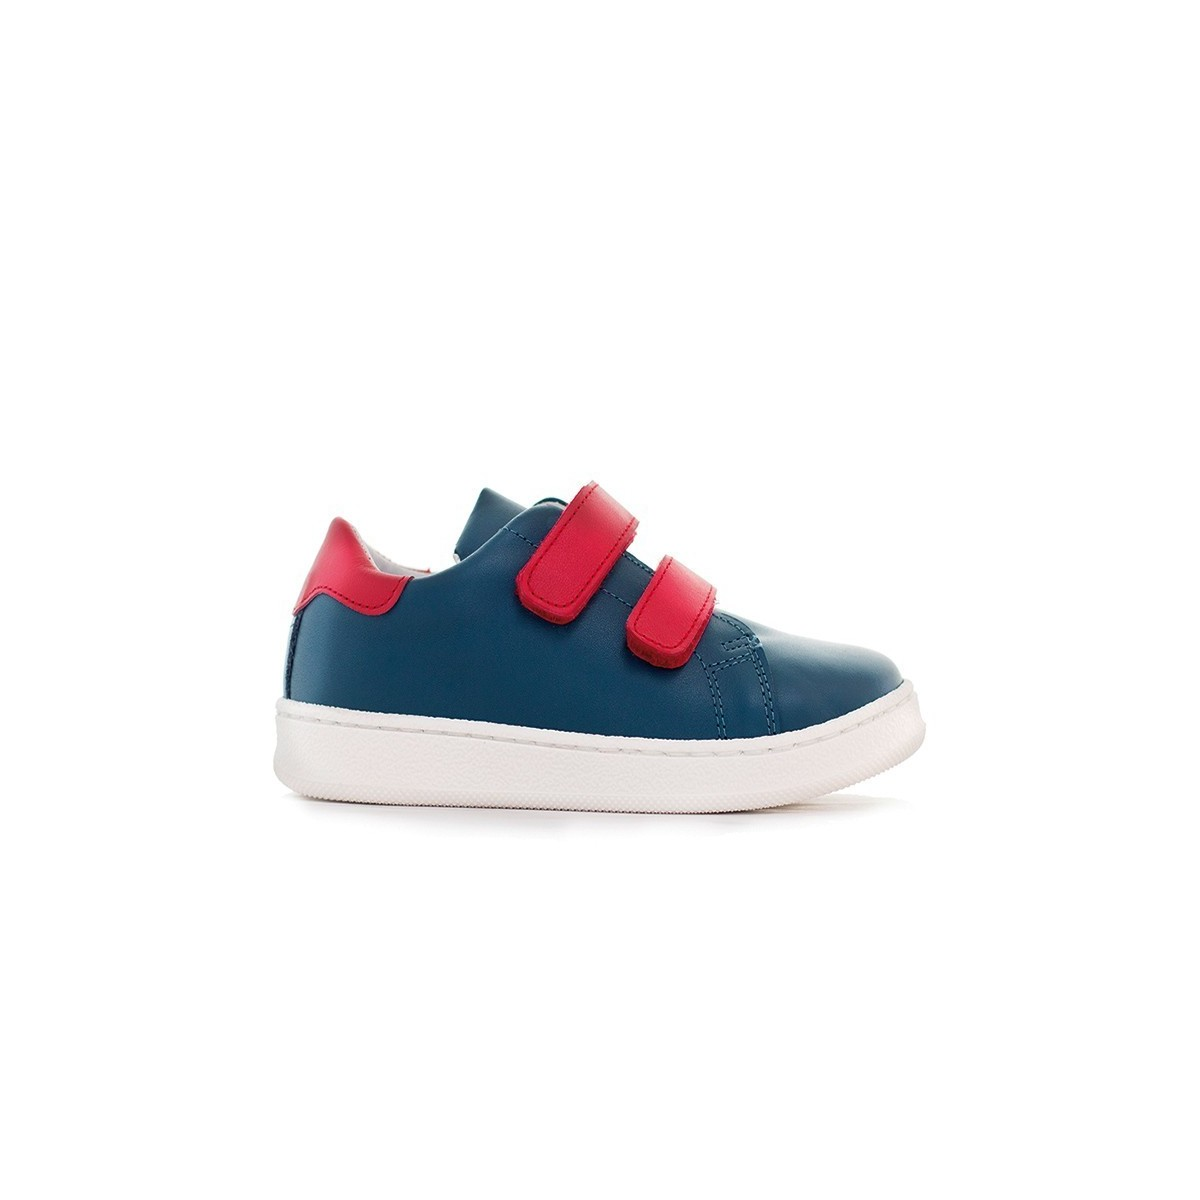 Basket Moonwalk cuir bleu marine/rouge